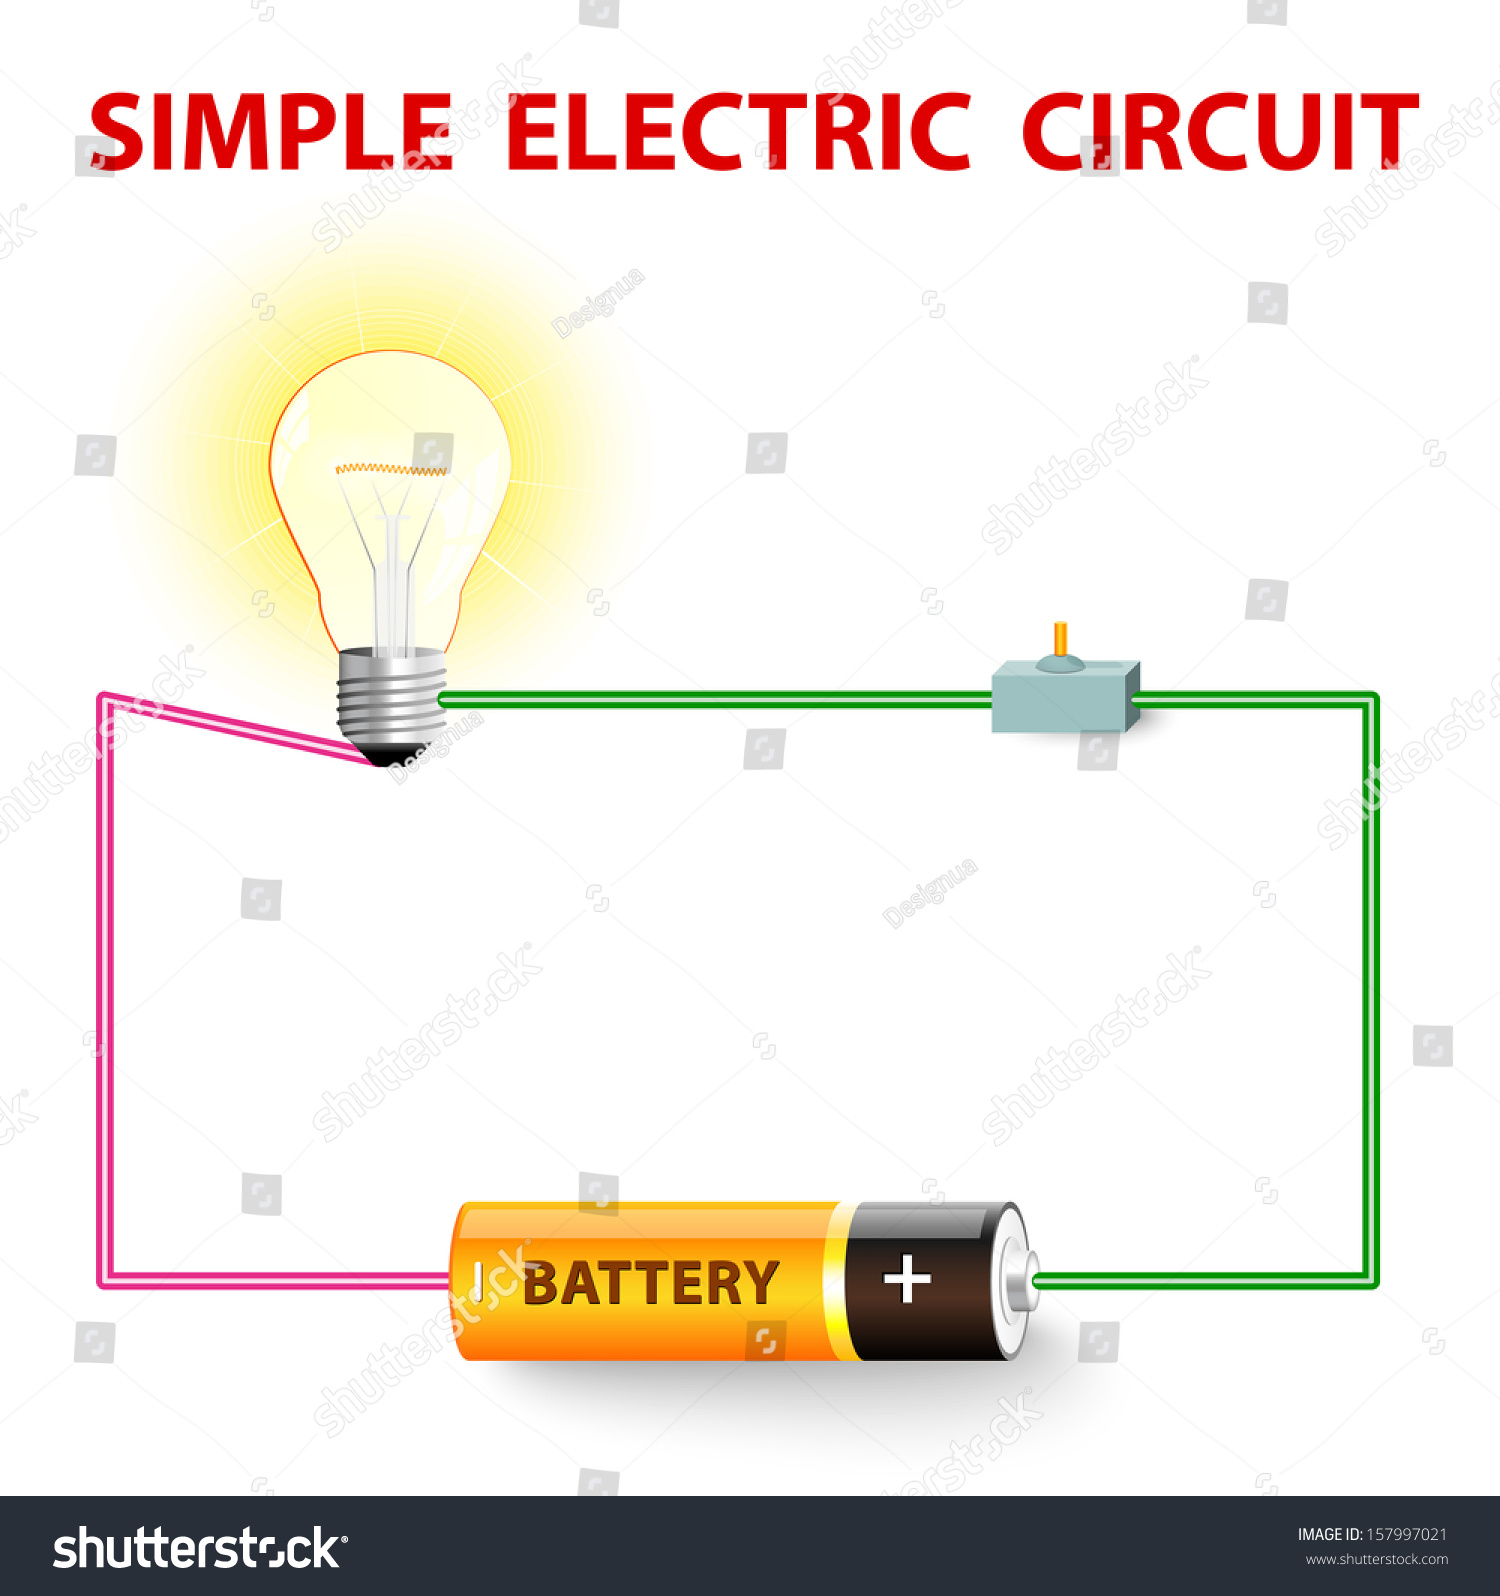 Simple Electric Circuit Electrical Network Switch Stock Vector ...